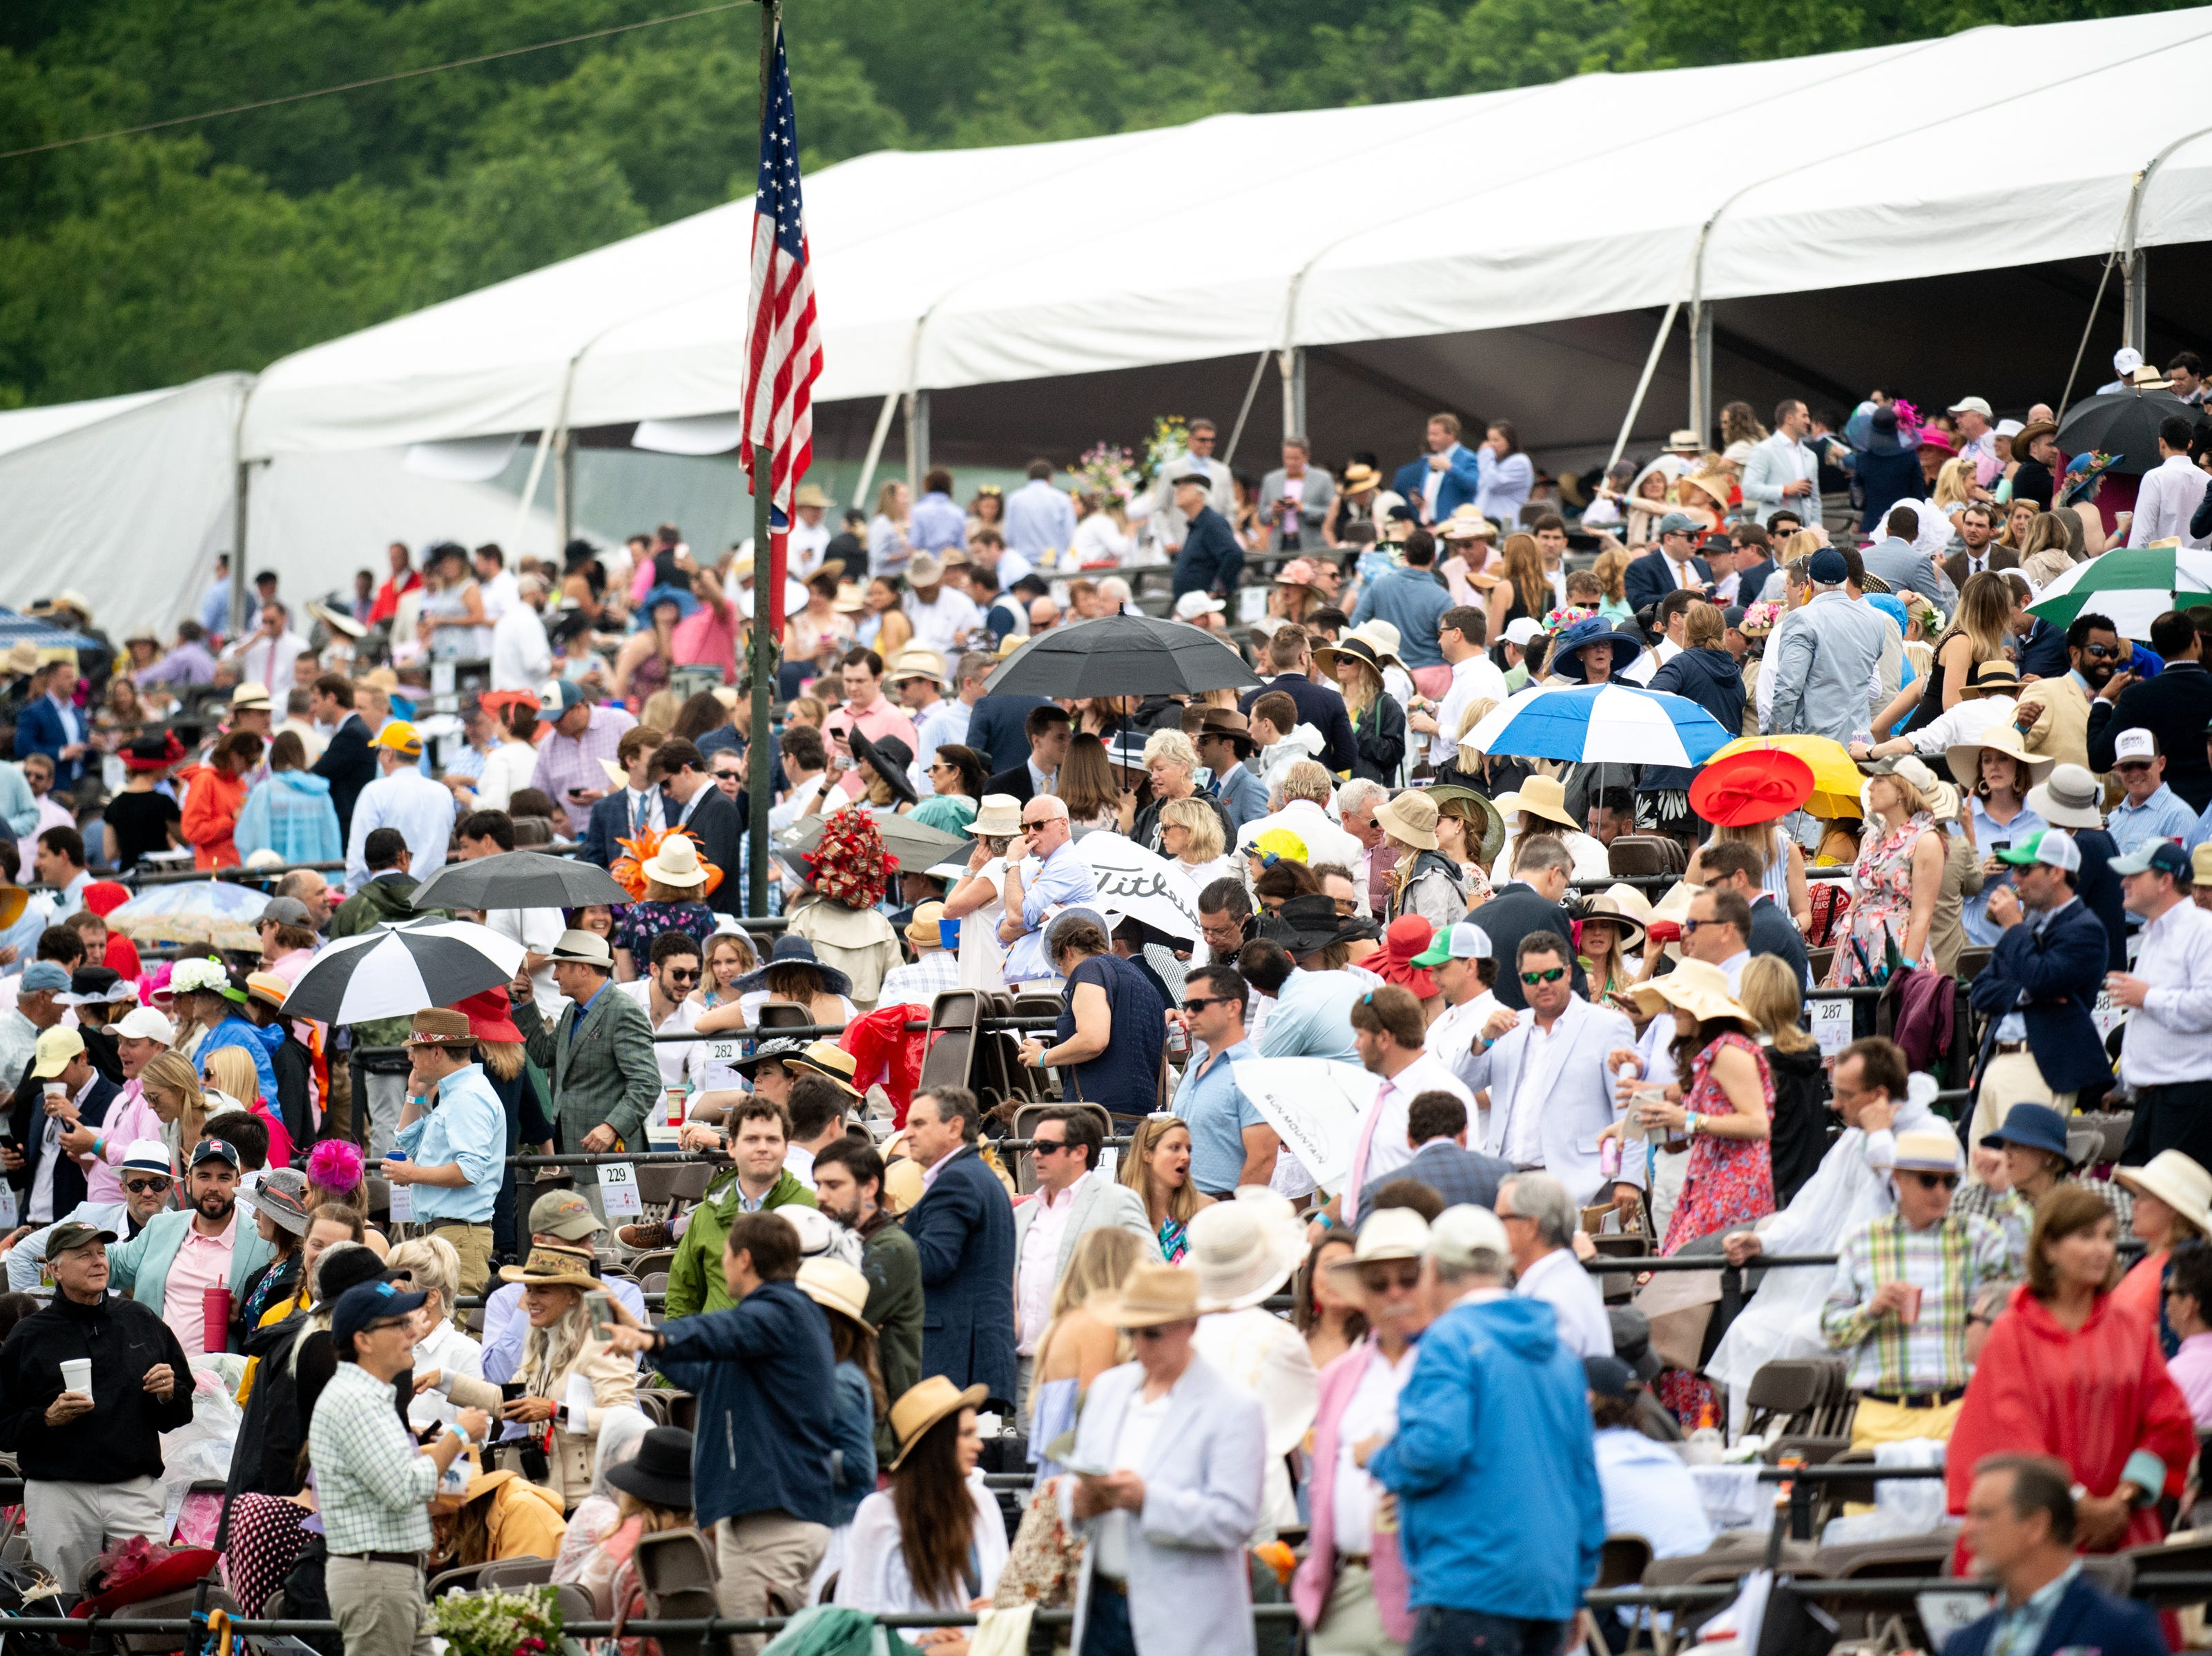 Spectators gather during the third race of the Iroquois Steeplechase at Percy Warner Park Saturday, May 11, 2019, in Nashville, Tenn.